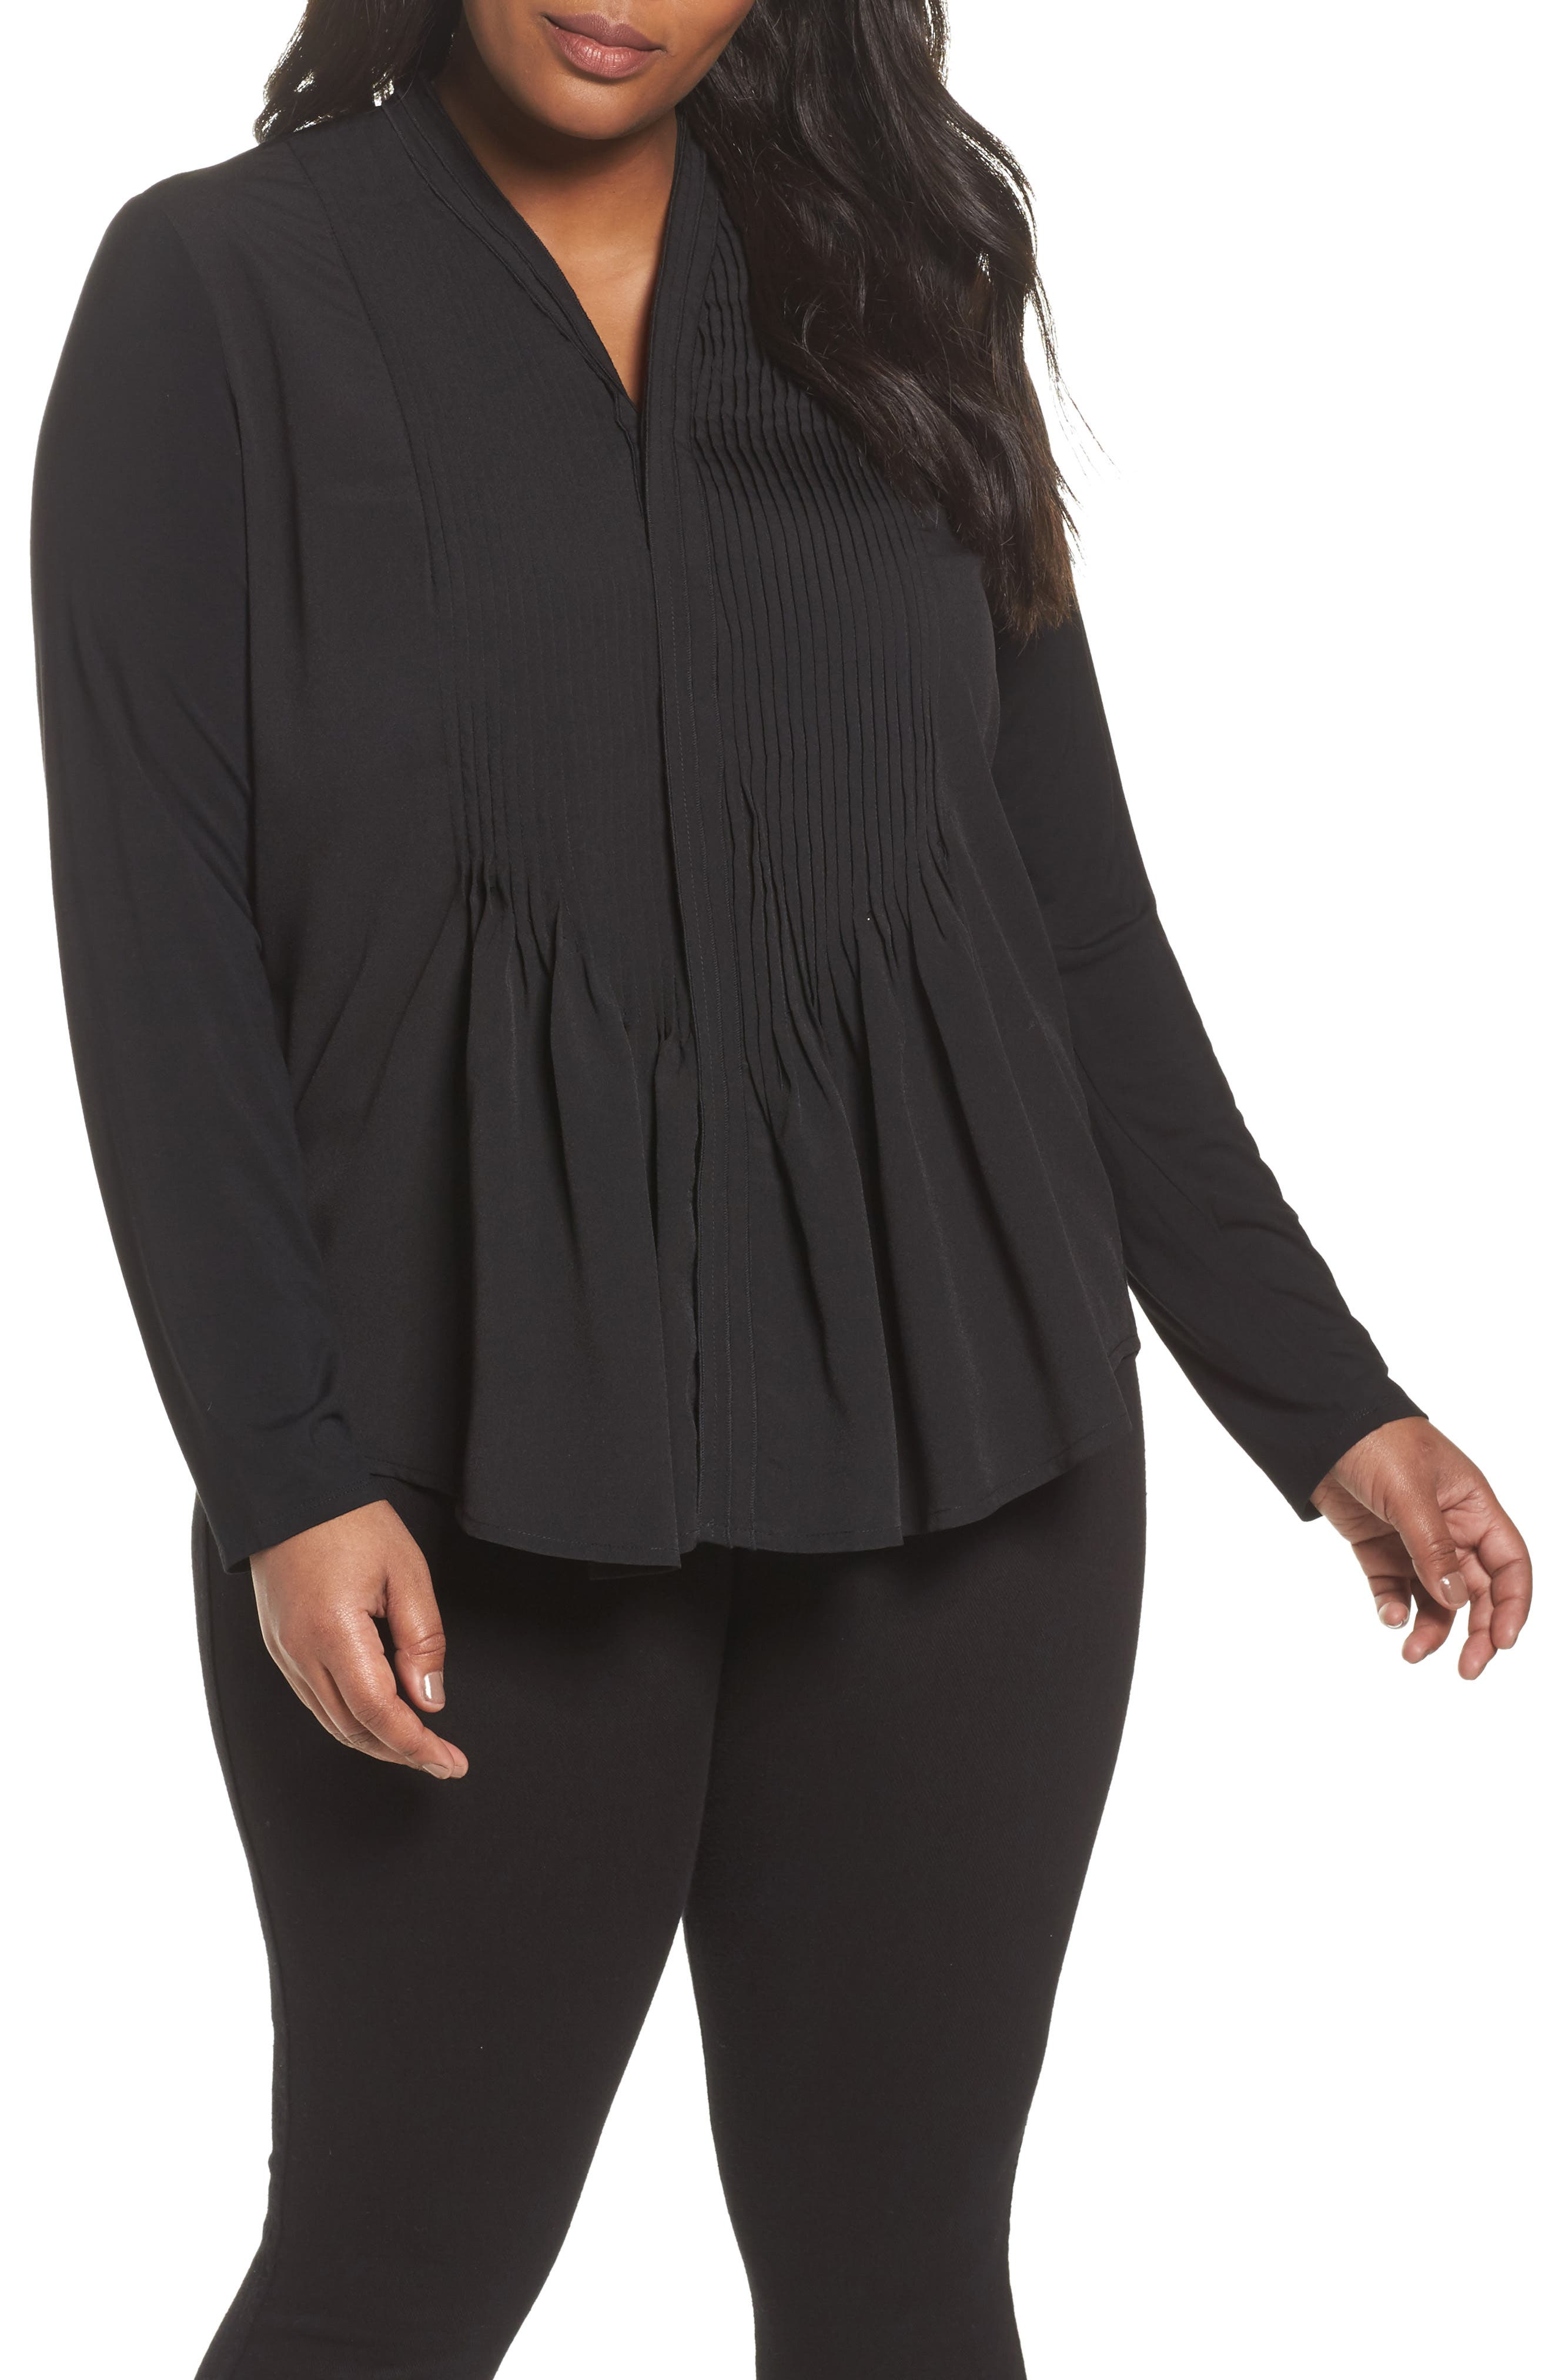 Main Image - Foxcroft Carrie Crepe & Jersey Top (Plus Size)